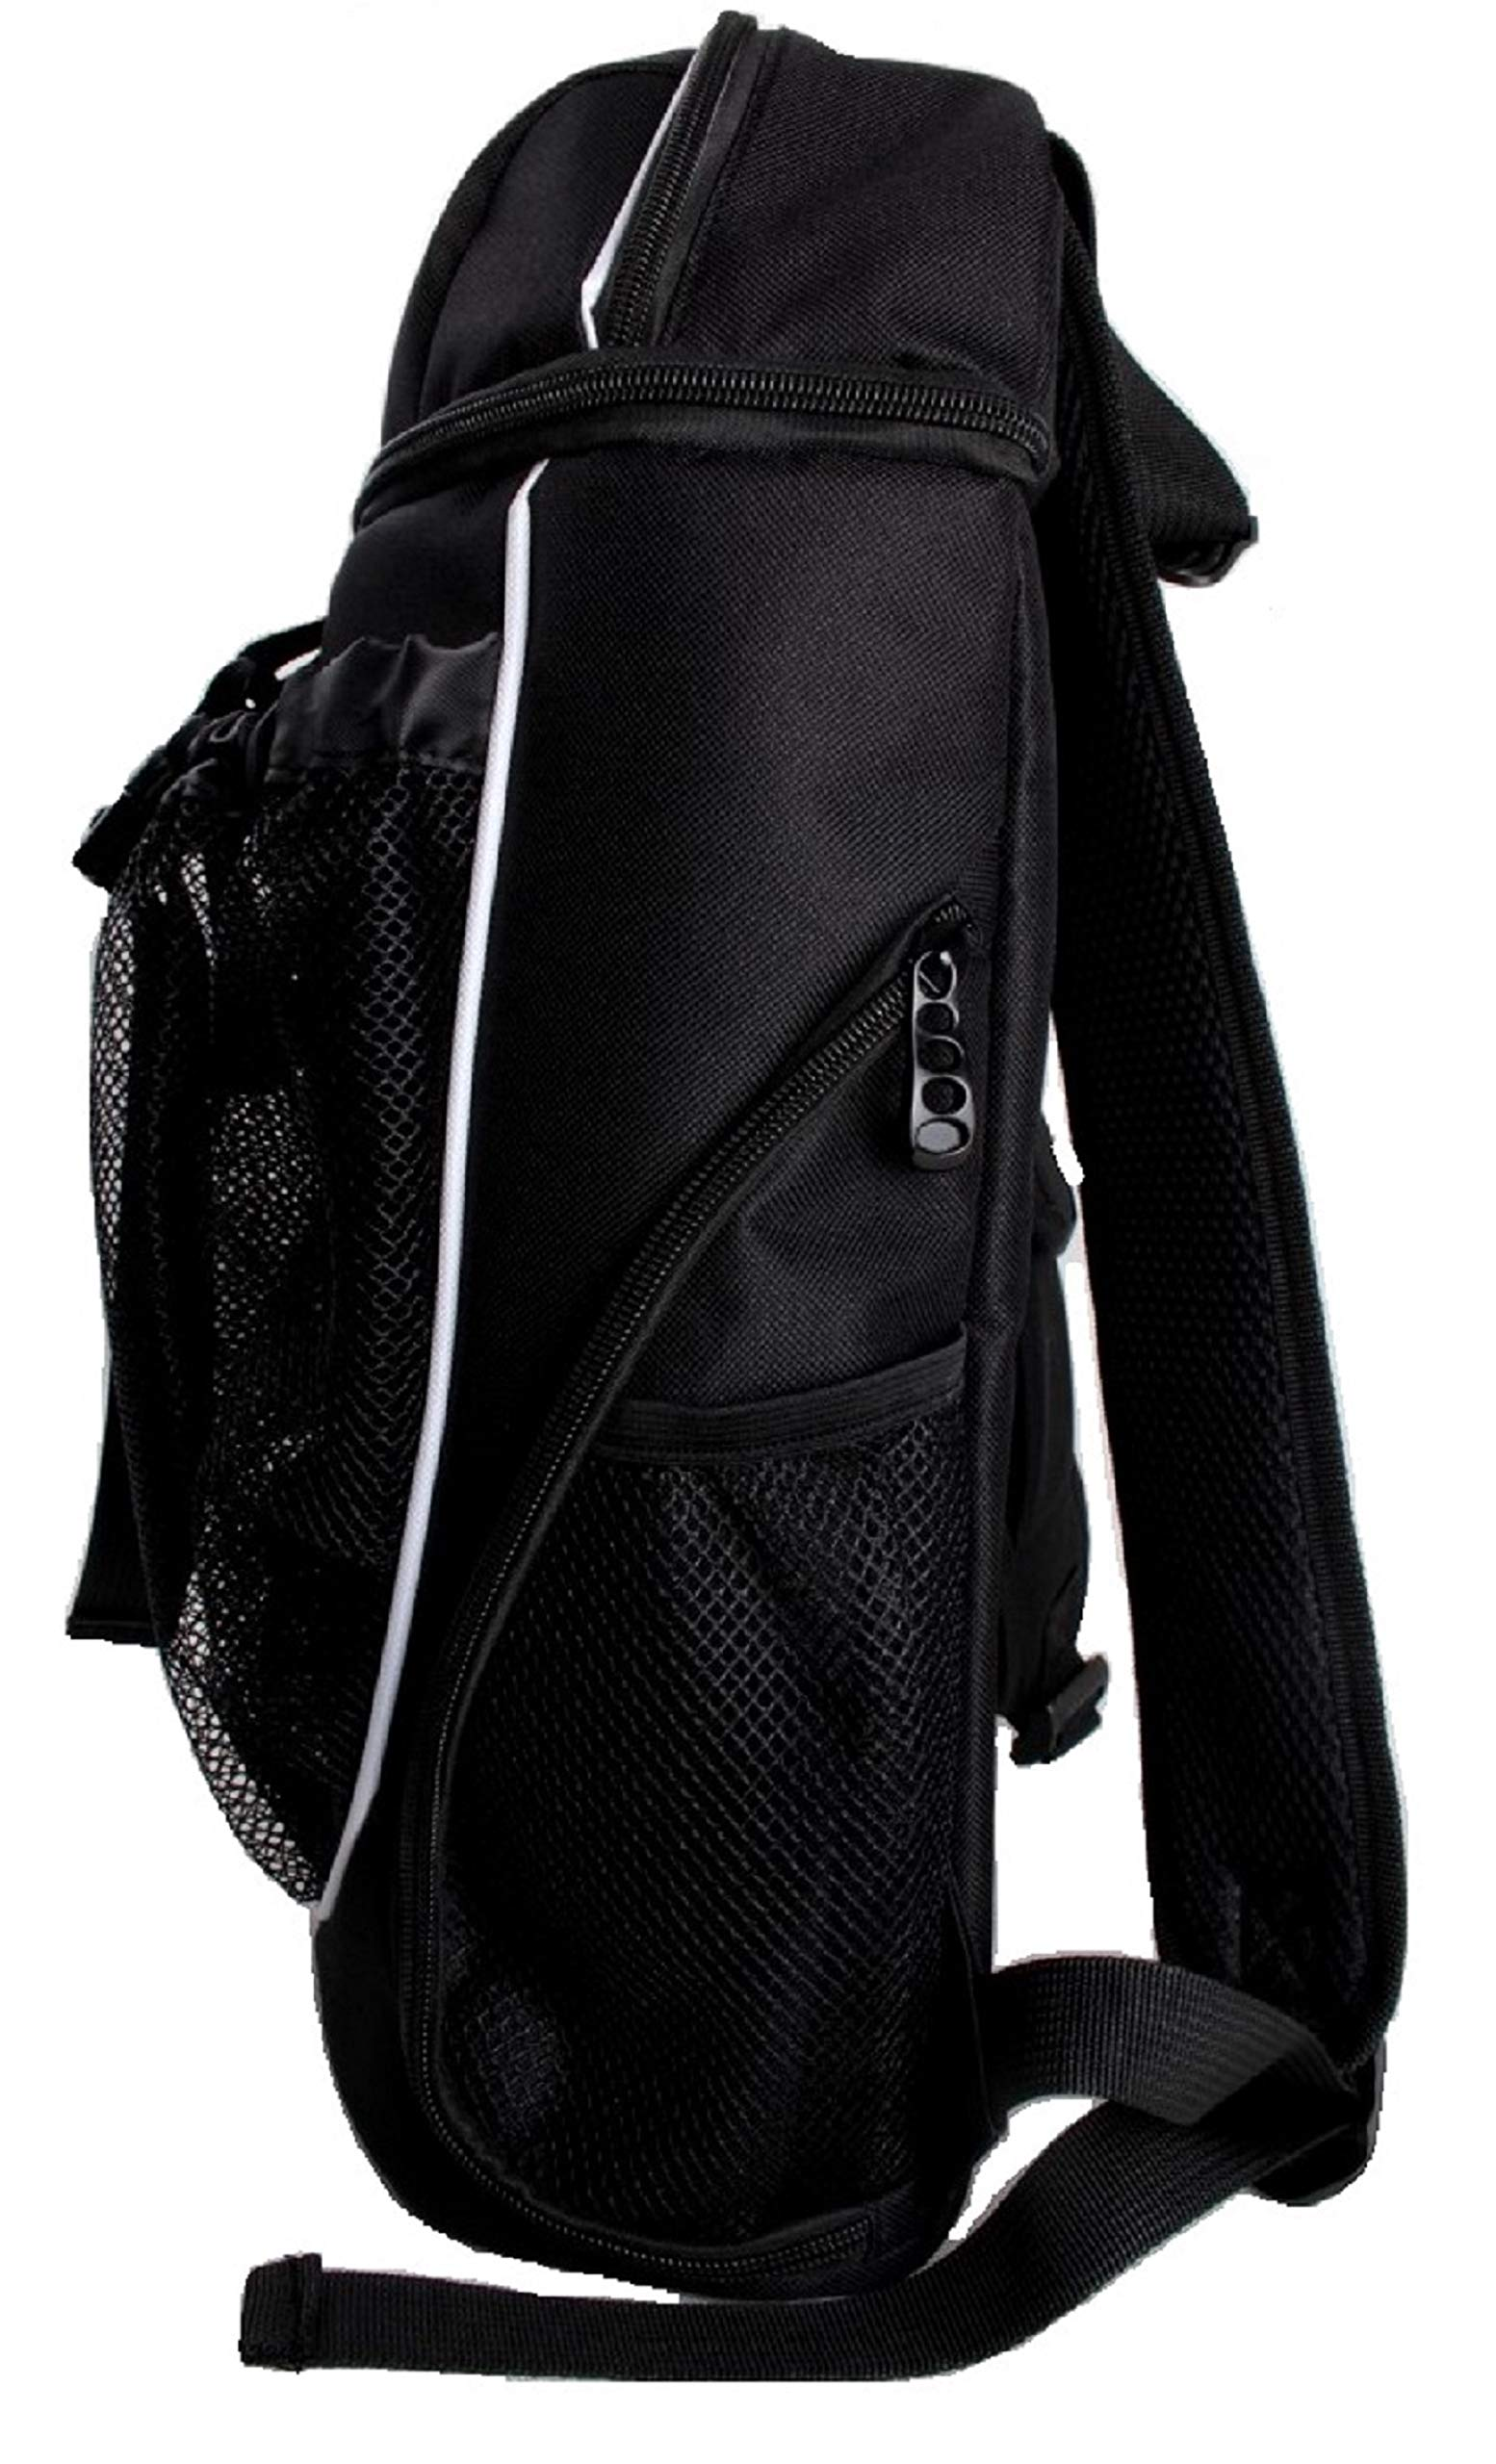 Hard Work Sports Basketball Backpack with Ball Compartment by Hard Work Sports (Image #4)